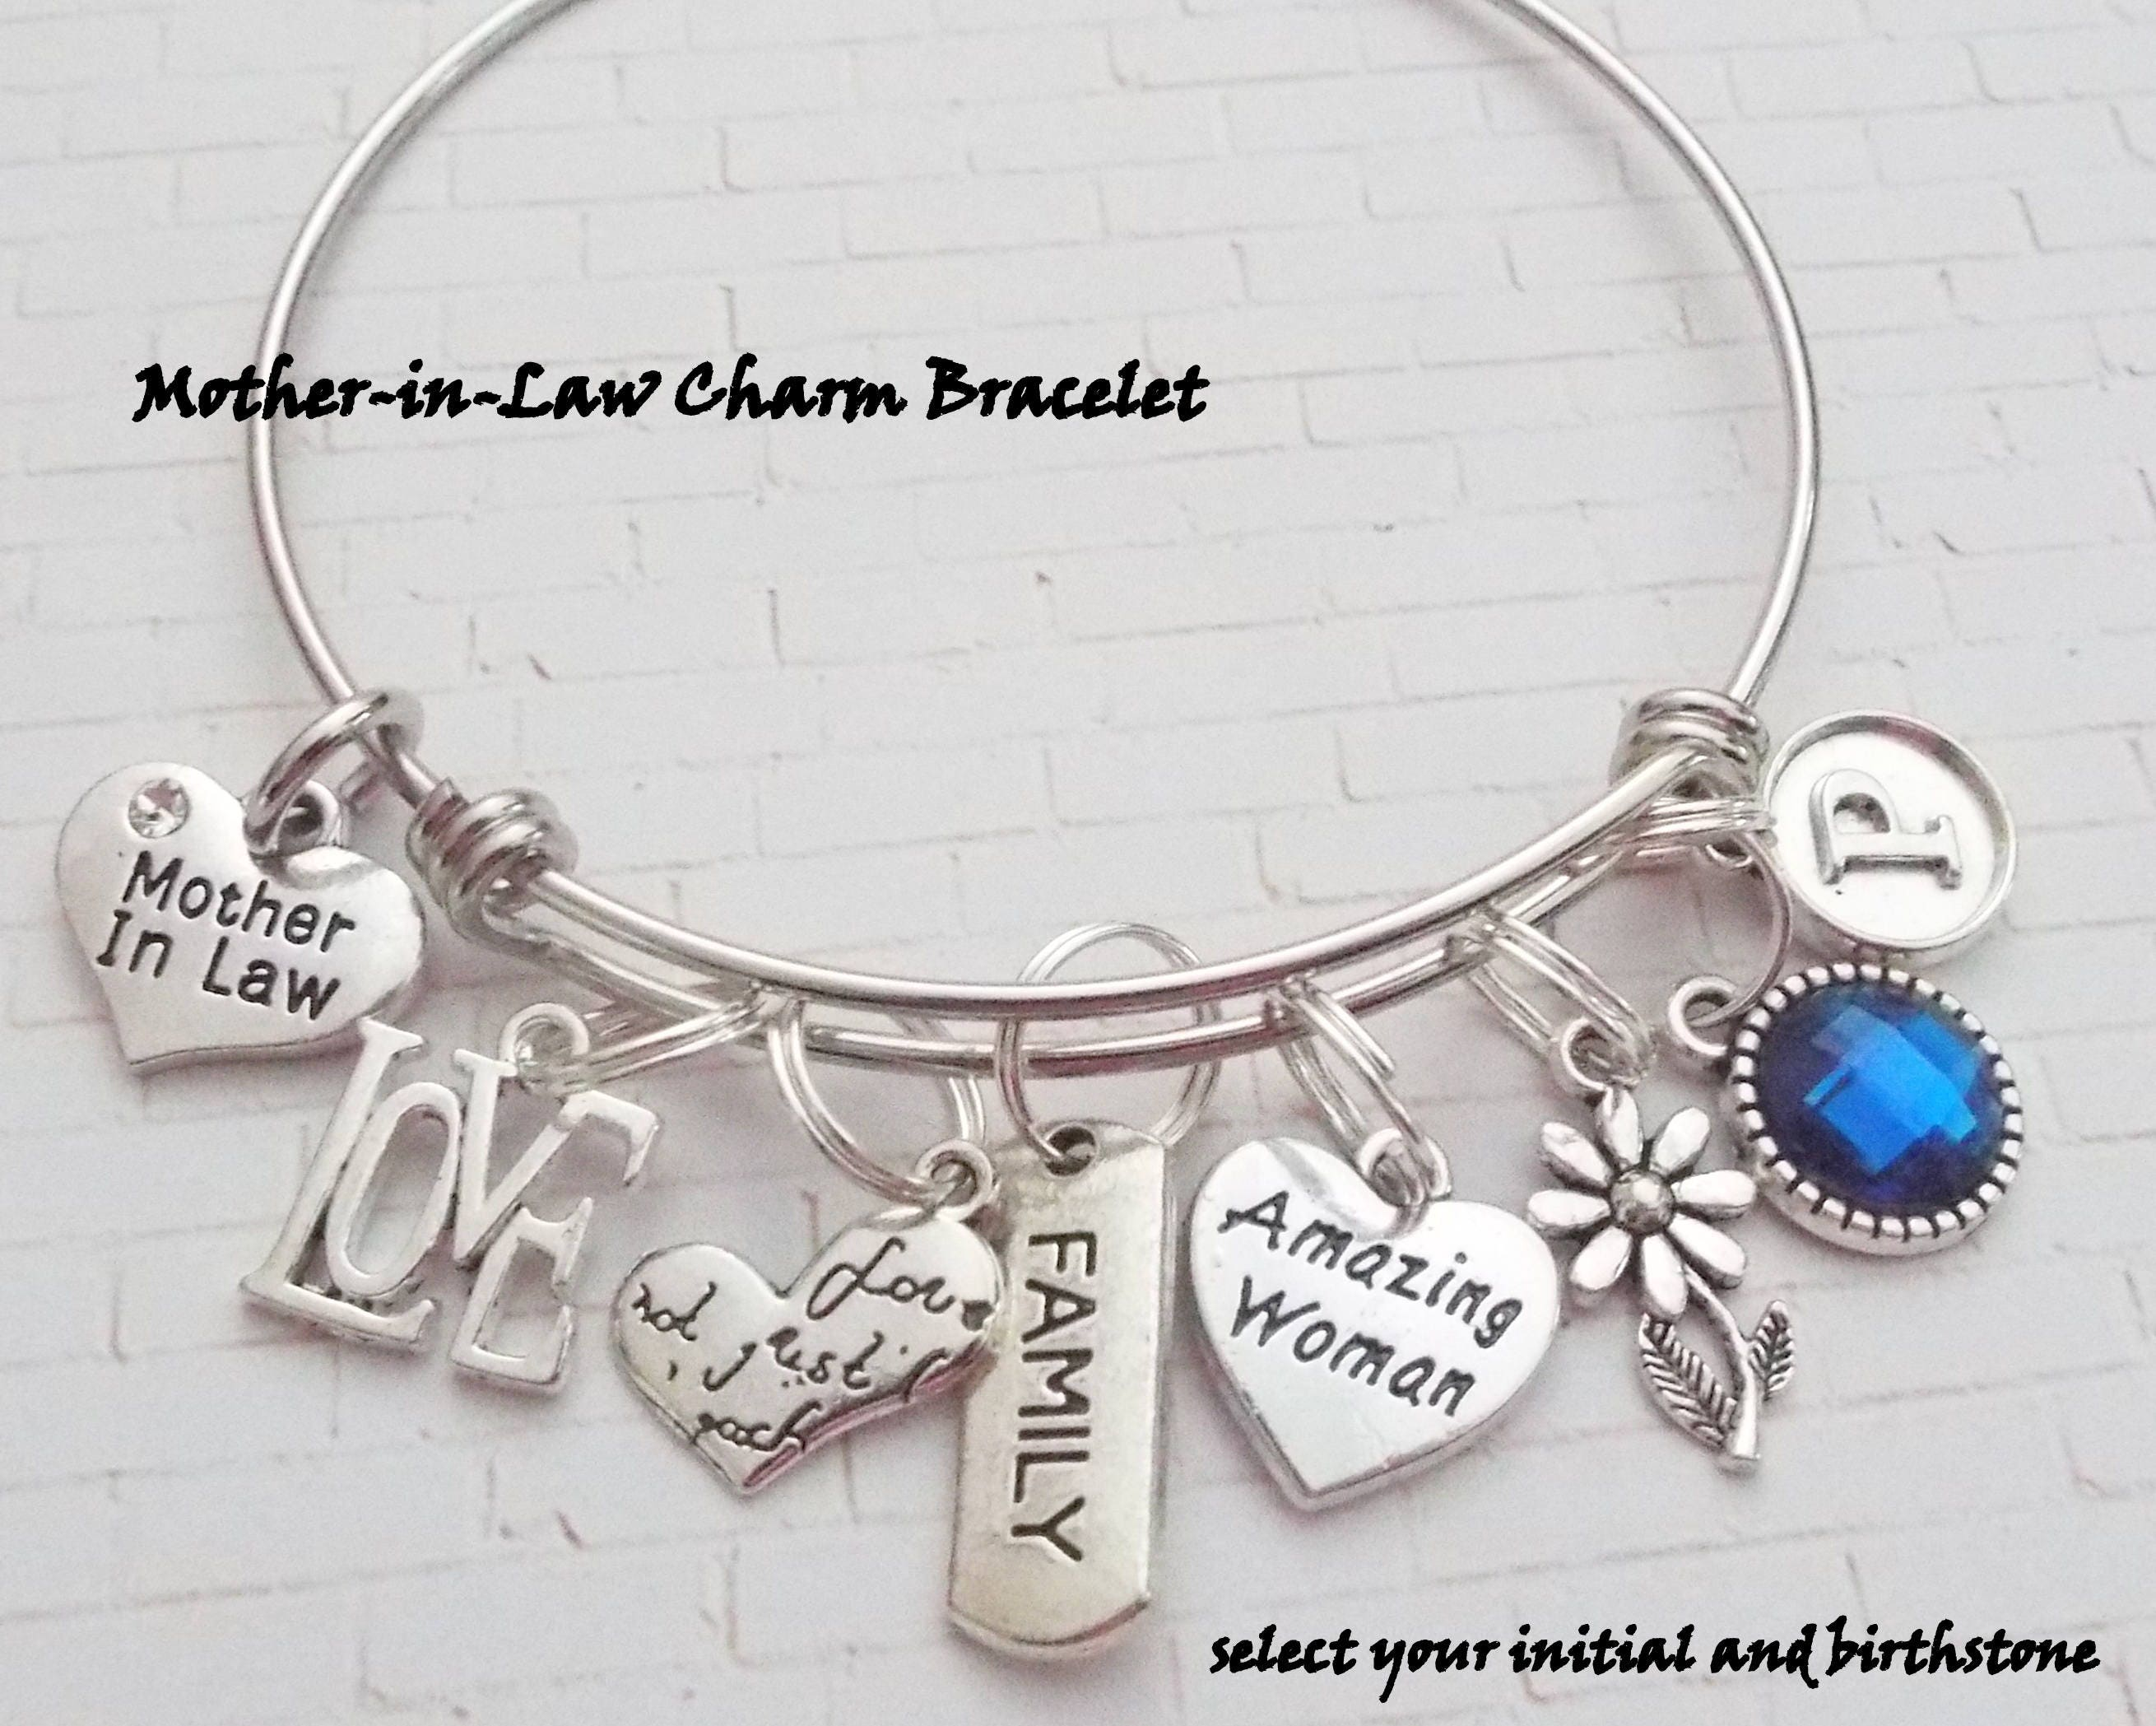 mother lizardi bracelet jewelry are here new birthstone designs necklaces blog personalized